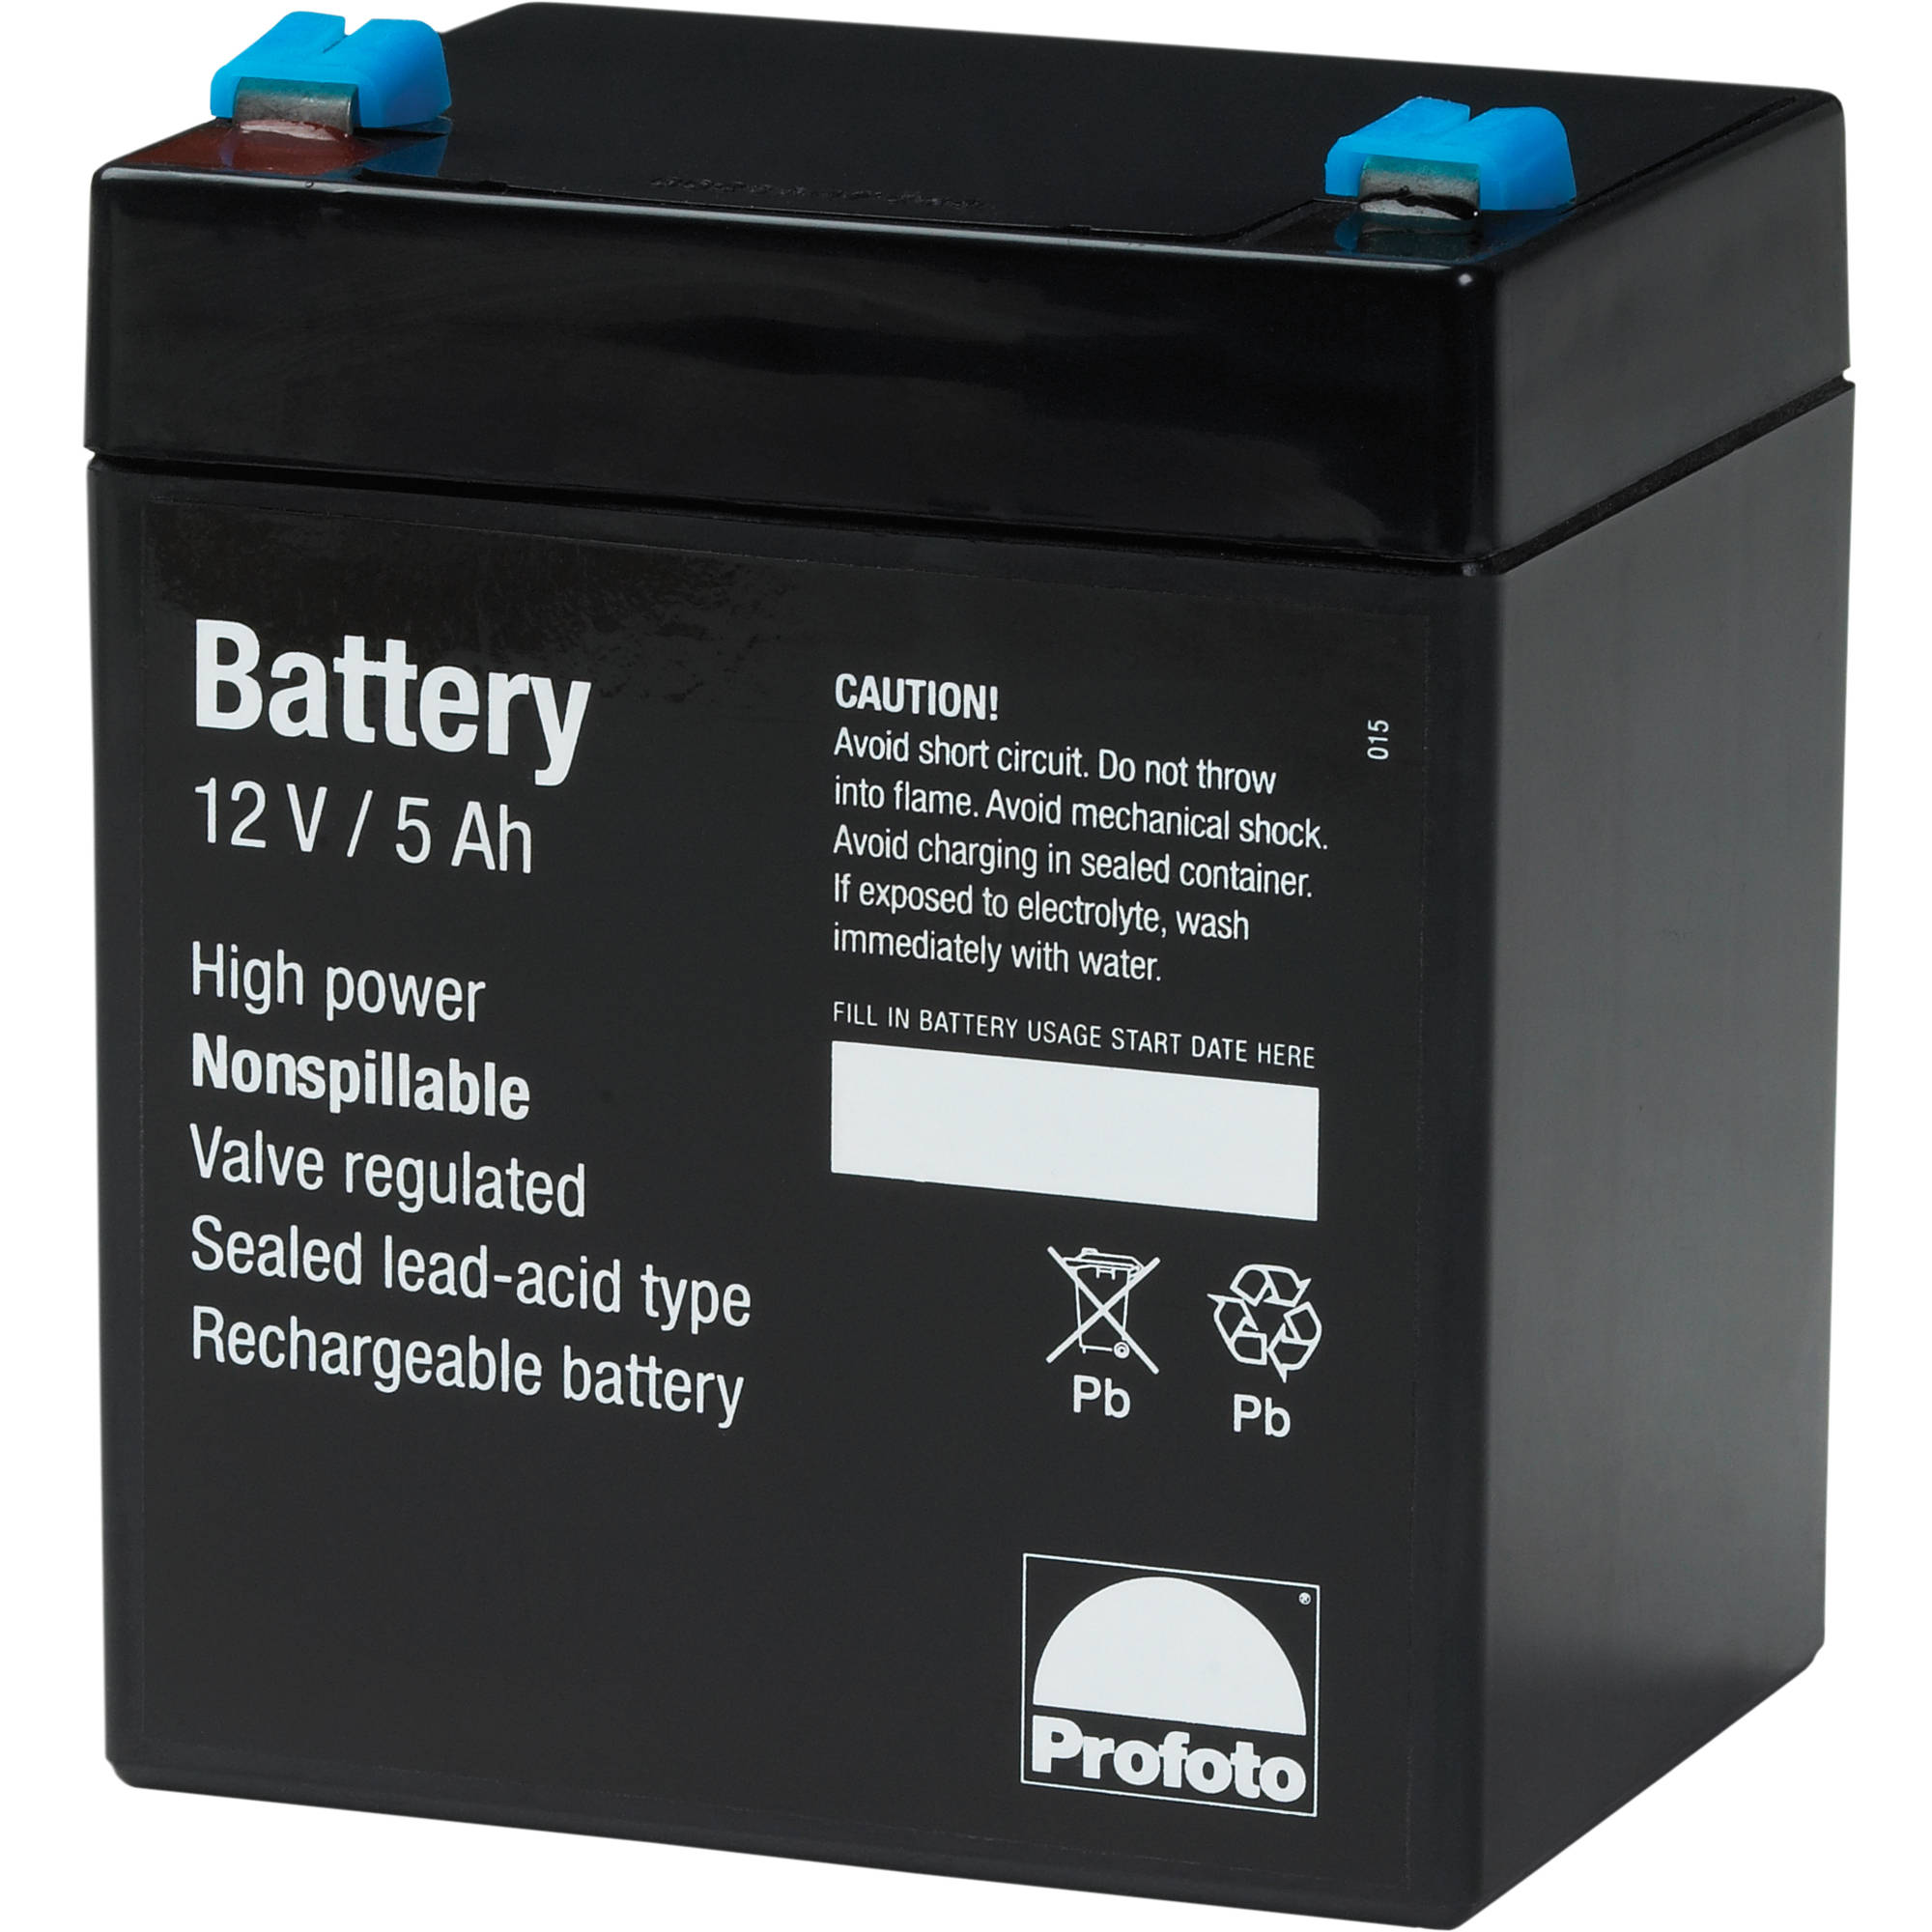 24v 8a Dual Voltage Xlr Charger as well 12v 7ah Rechargeable Battery moreover Profoto 100222 lead acid battery moreover Watch besides P 12v 18ah Sealed Lead Acid Battery 1. on sealed lead acid battery charger